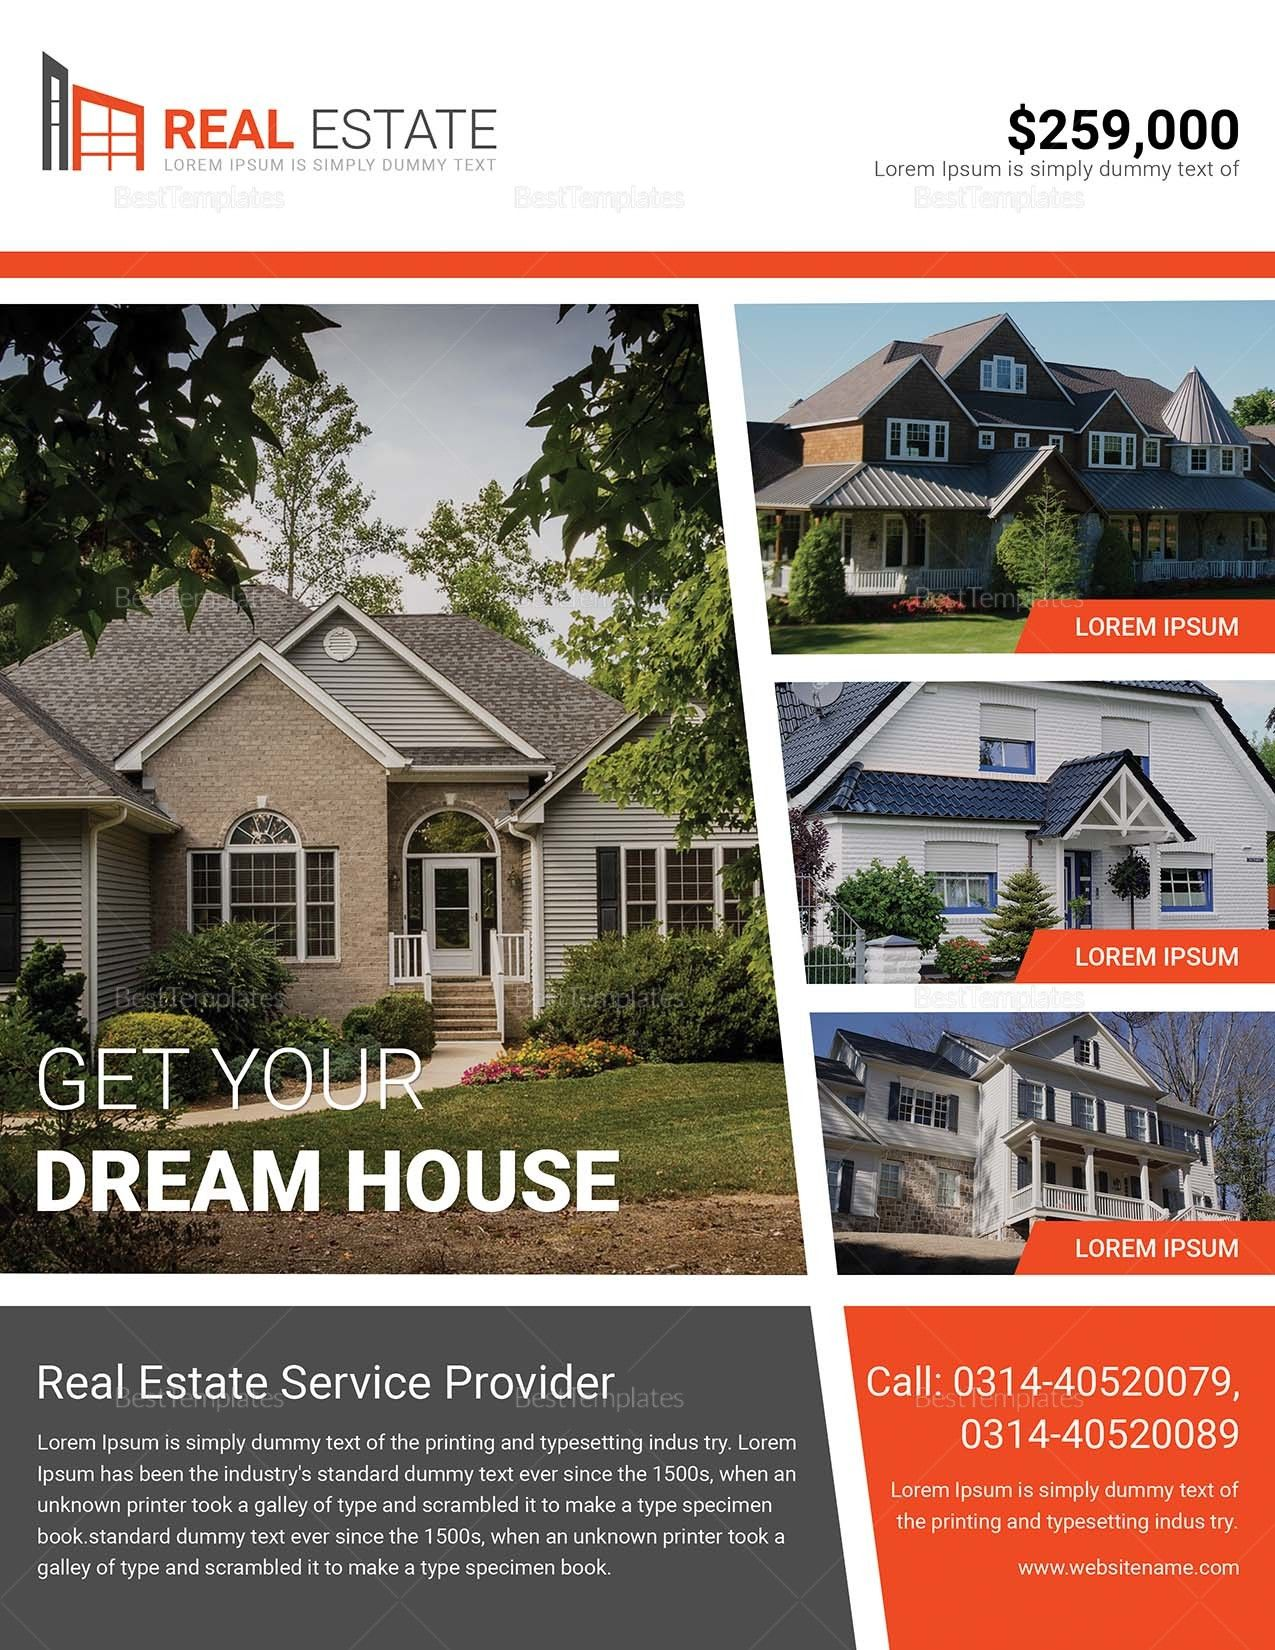 Dream Home Real Estate Flyer Design Real Estate Houses Real Estate Flyers Real Estate Flyer Template House for sale flyer template